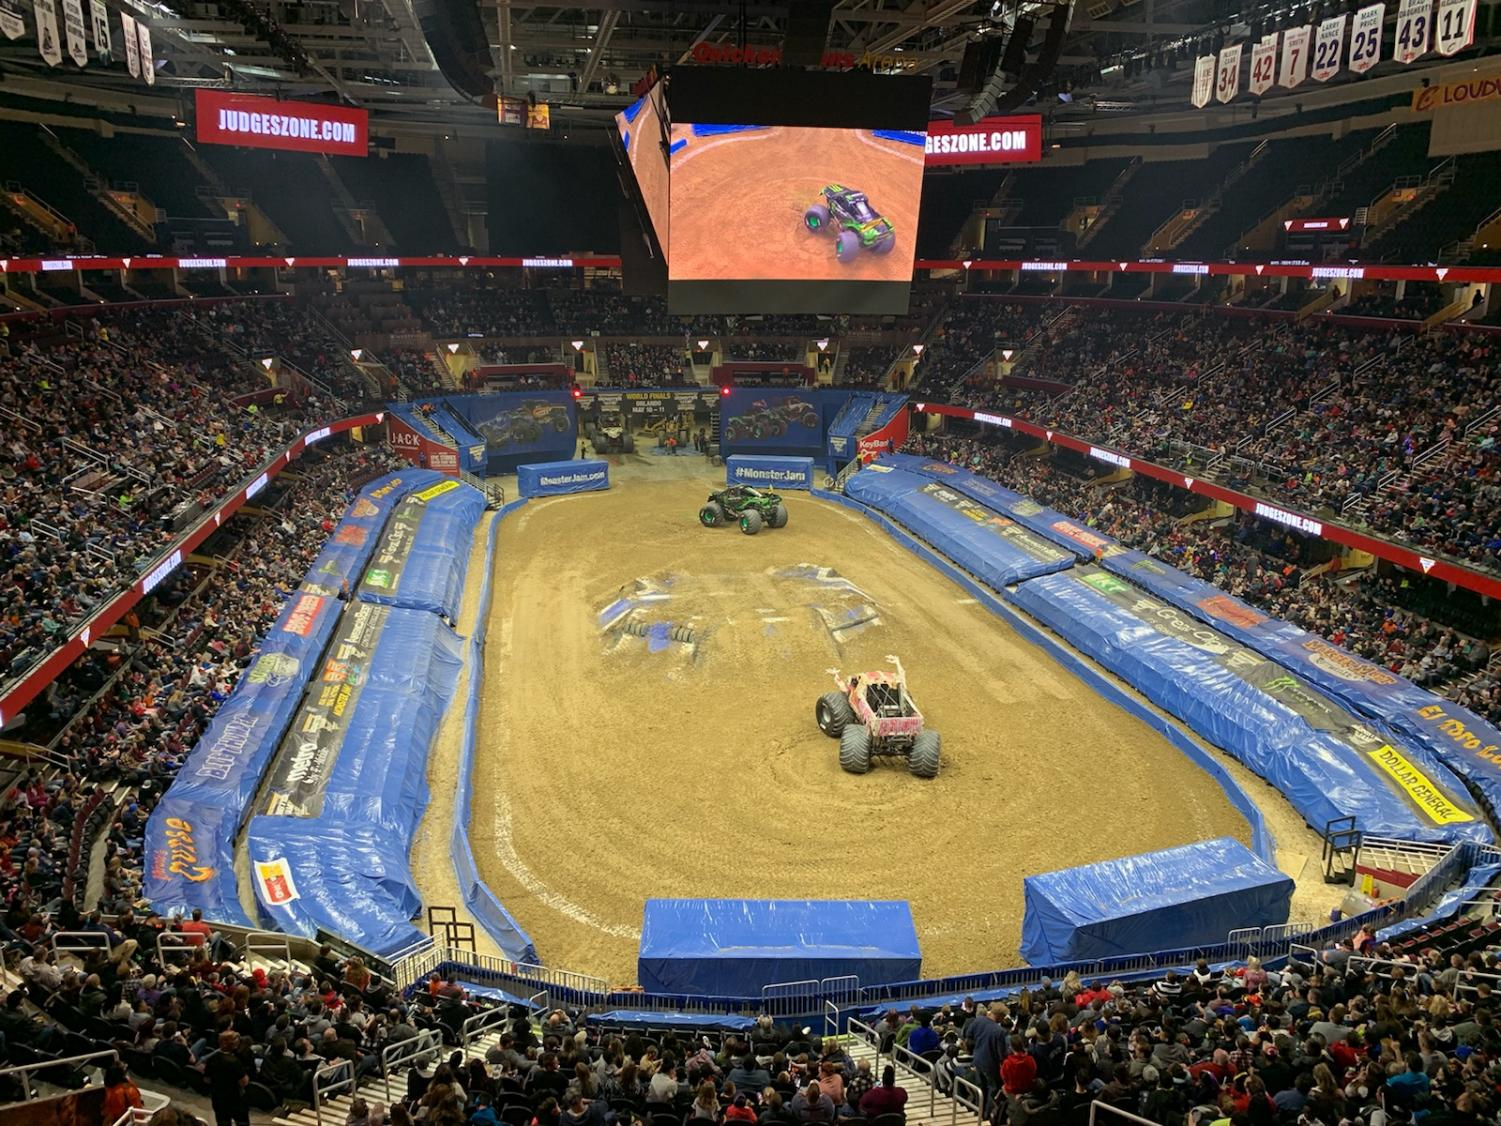 Monster trucks, louder than expected, drive at the Quicken Loans Arena as part of Monster Jam.